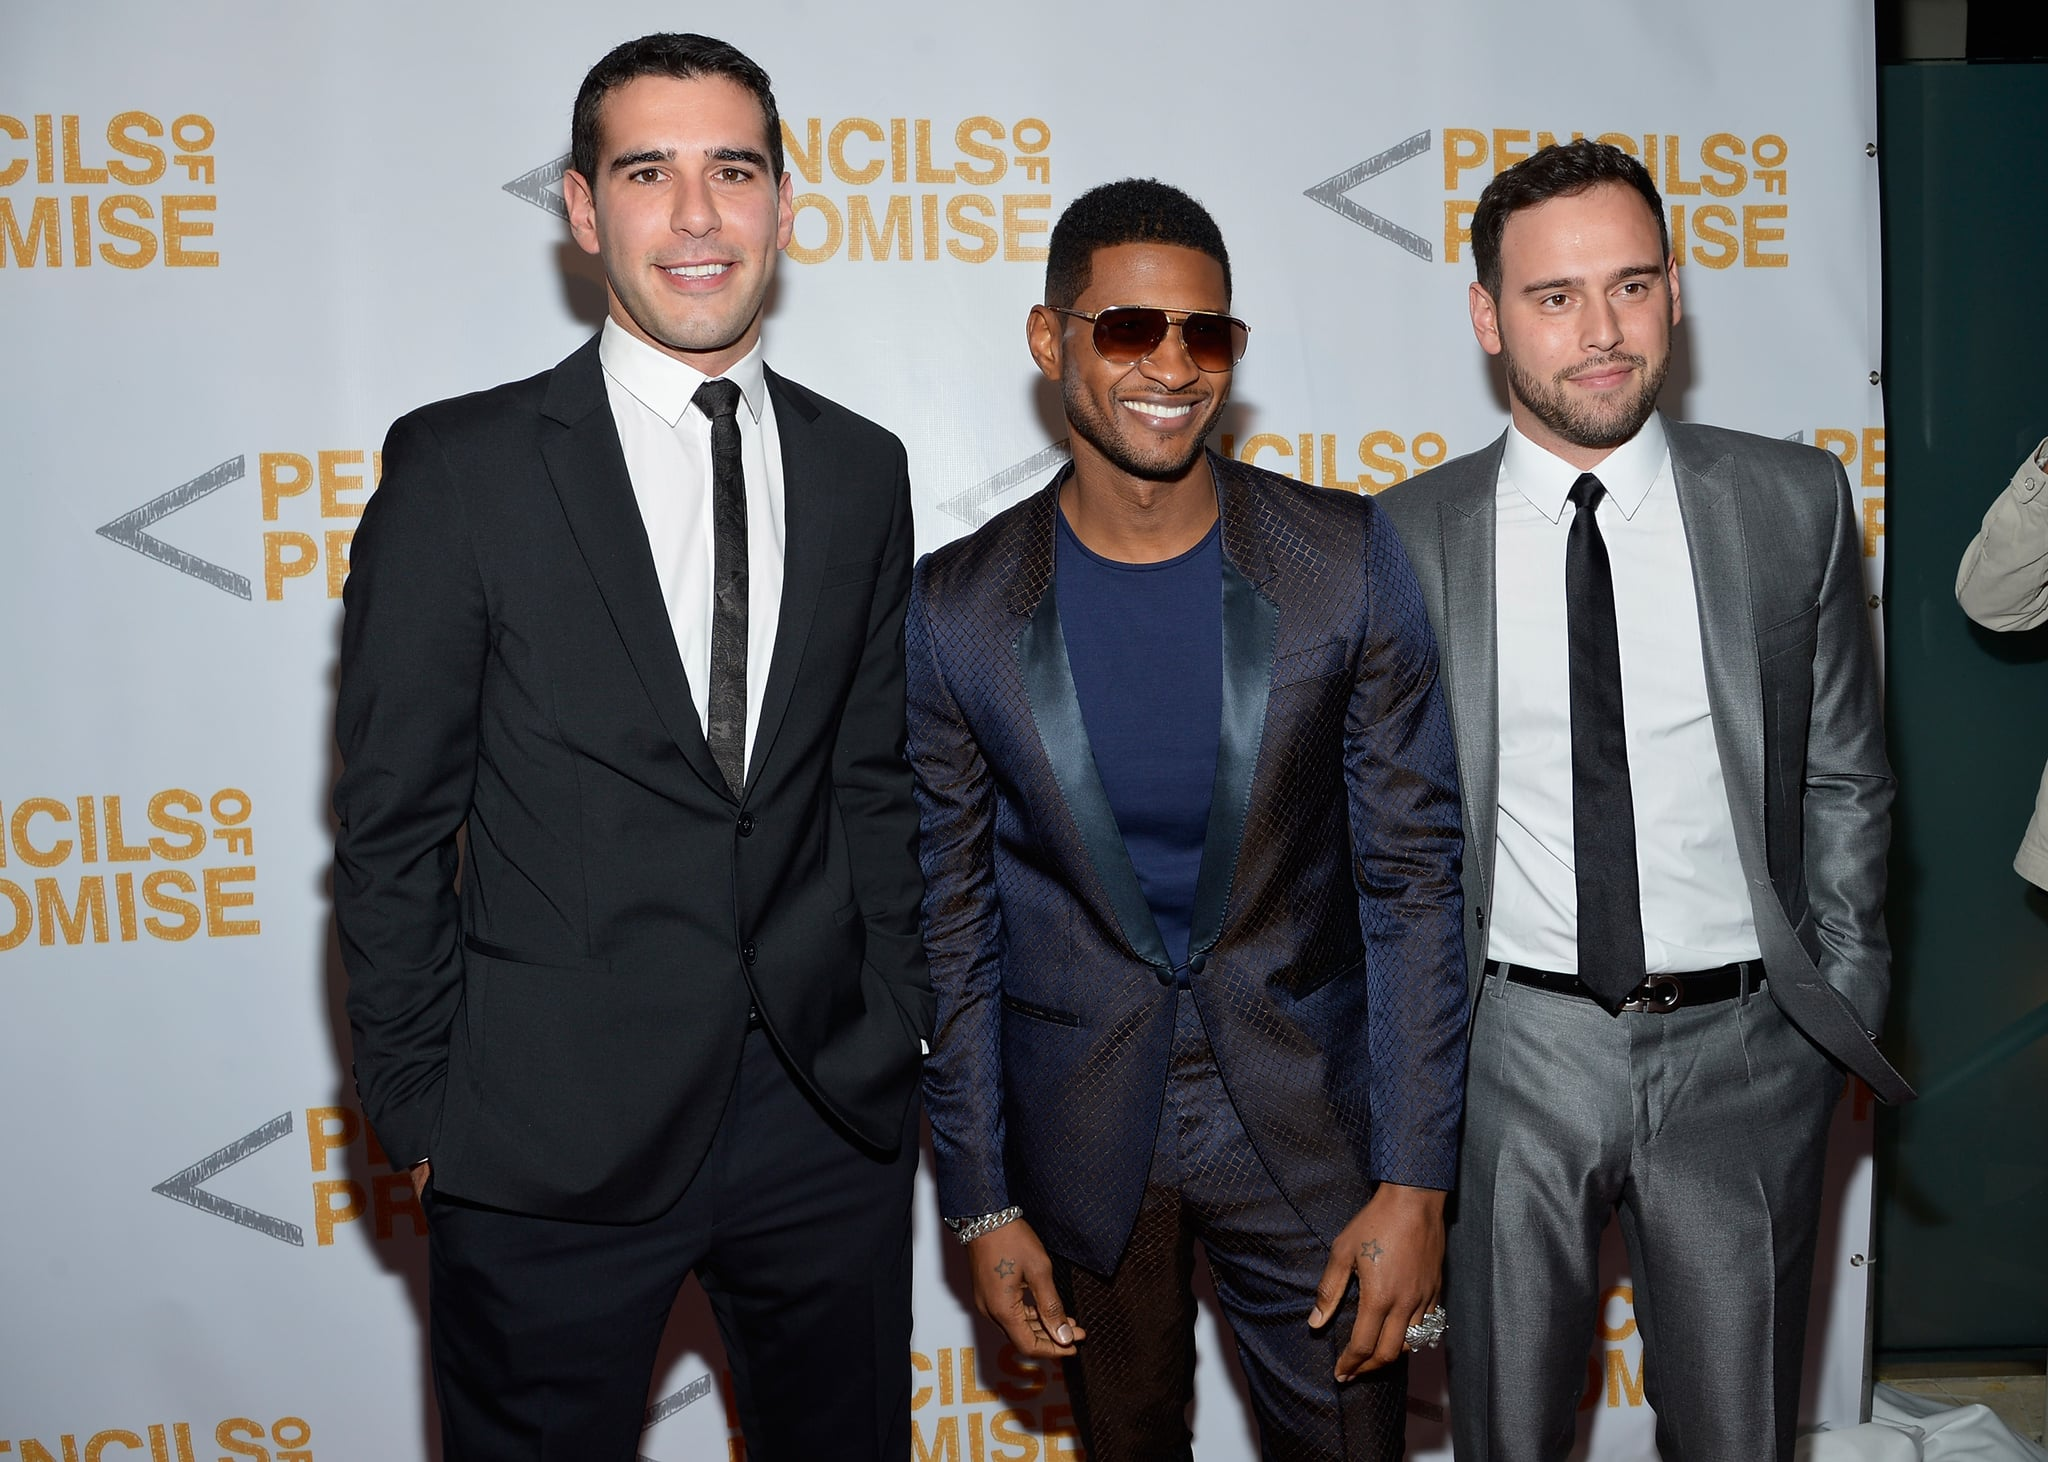 Usher posed with Scooter Braun and Adam Braun on the red carpet.